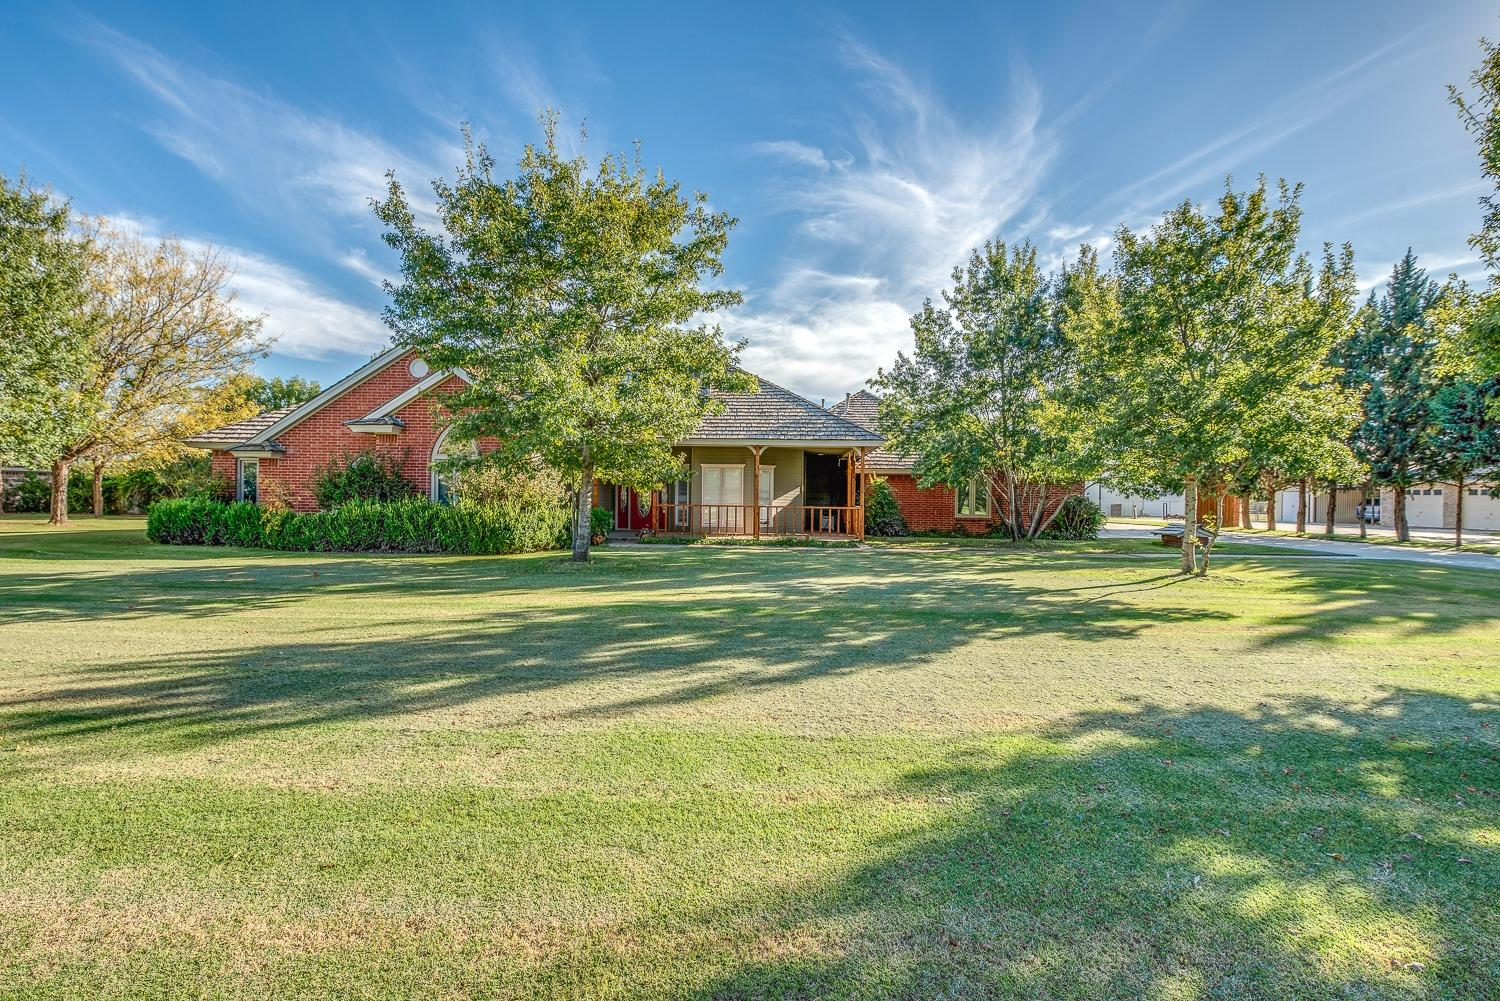 7001 59th Street, Lubbock in Lubbock County, TX 79407 Home for Sale